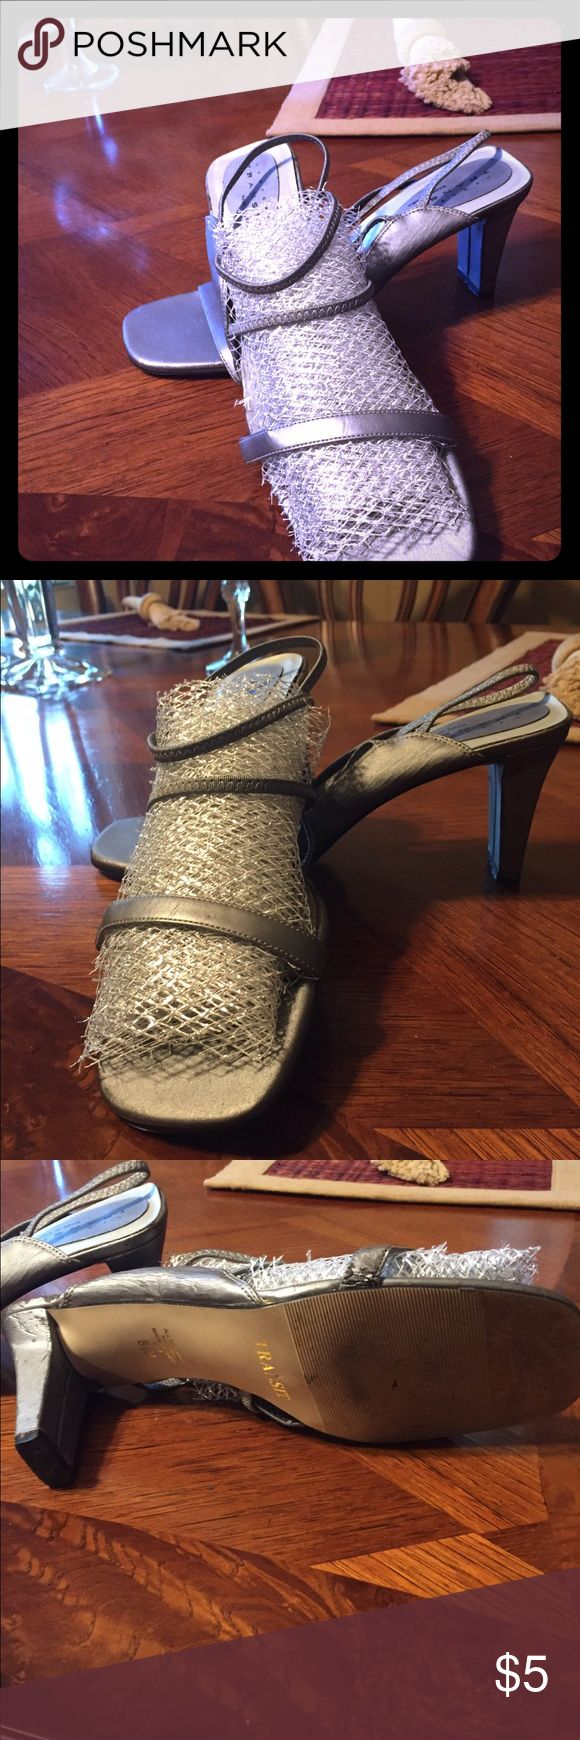 Sandals 🌸 Silver strappy sandals; noted wear and tear, see photos. Reflected in pricing Shoes Sandals